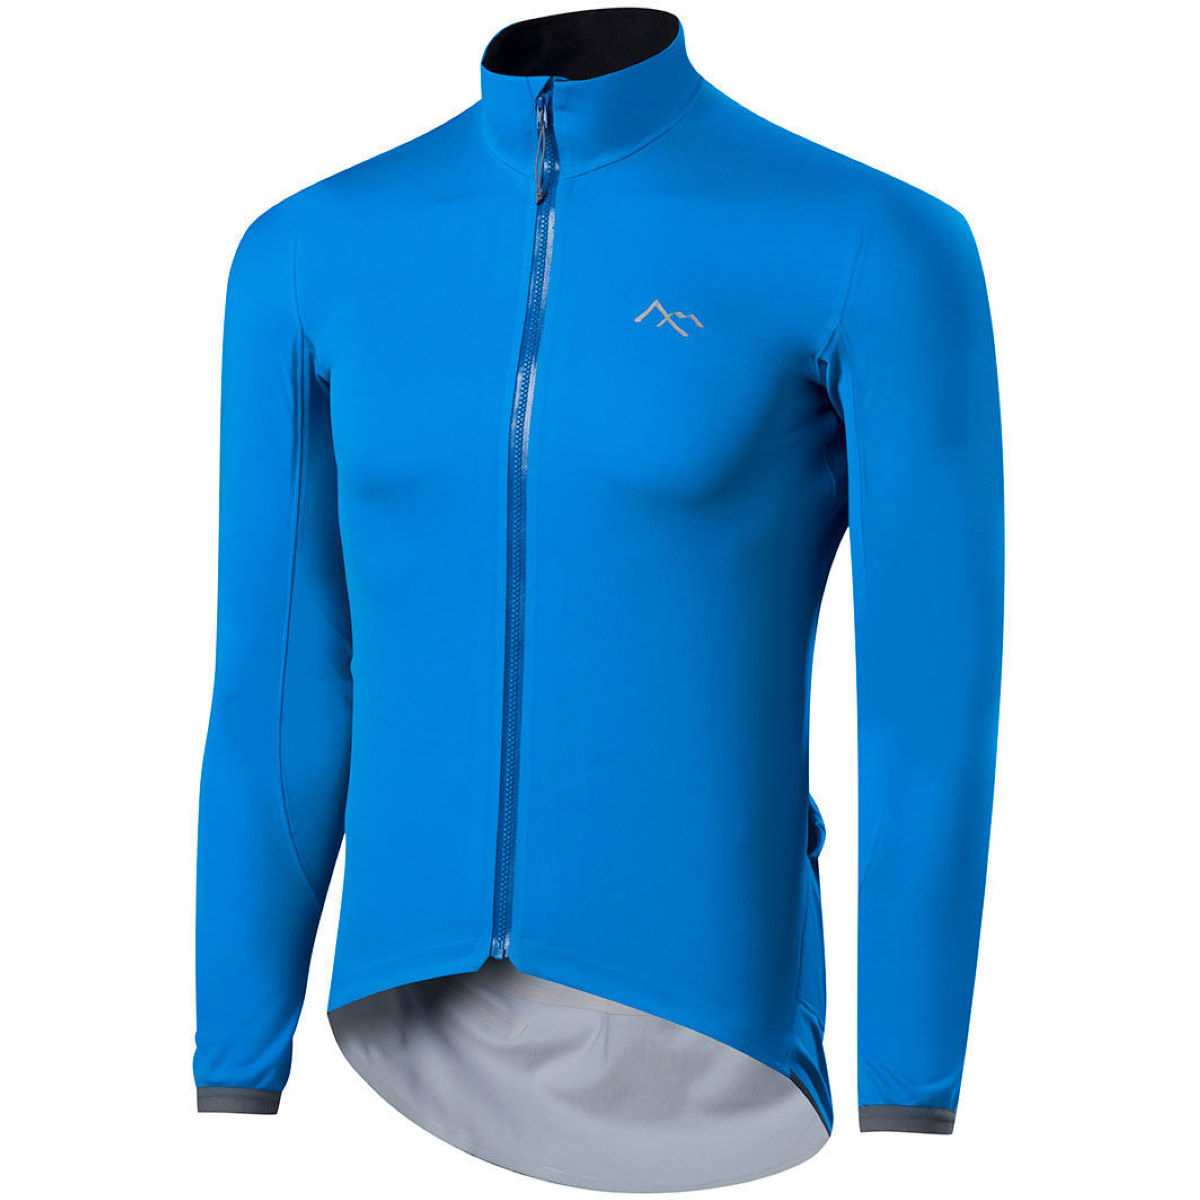 Maillot 7Mesh Corsa Windstopper Softshell - XS Blue Ox  Vestes